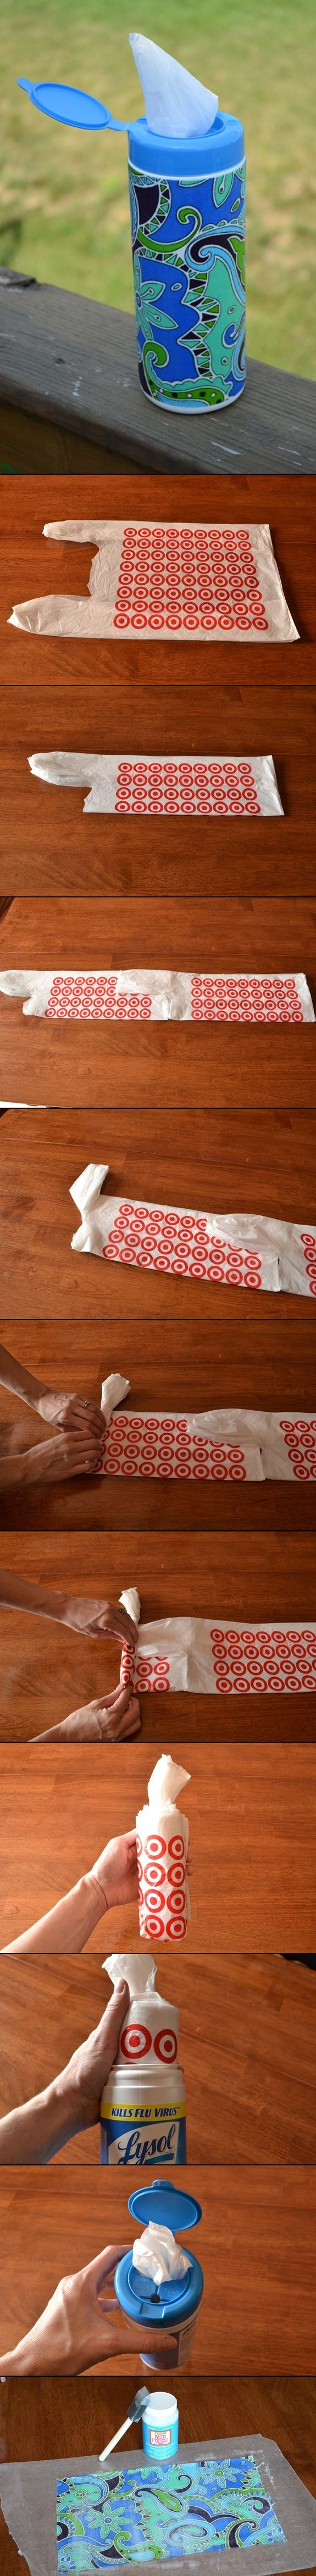 Make an embellished grocery bag container! Plastic bag